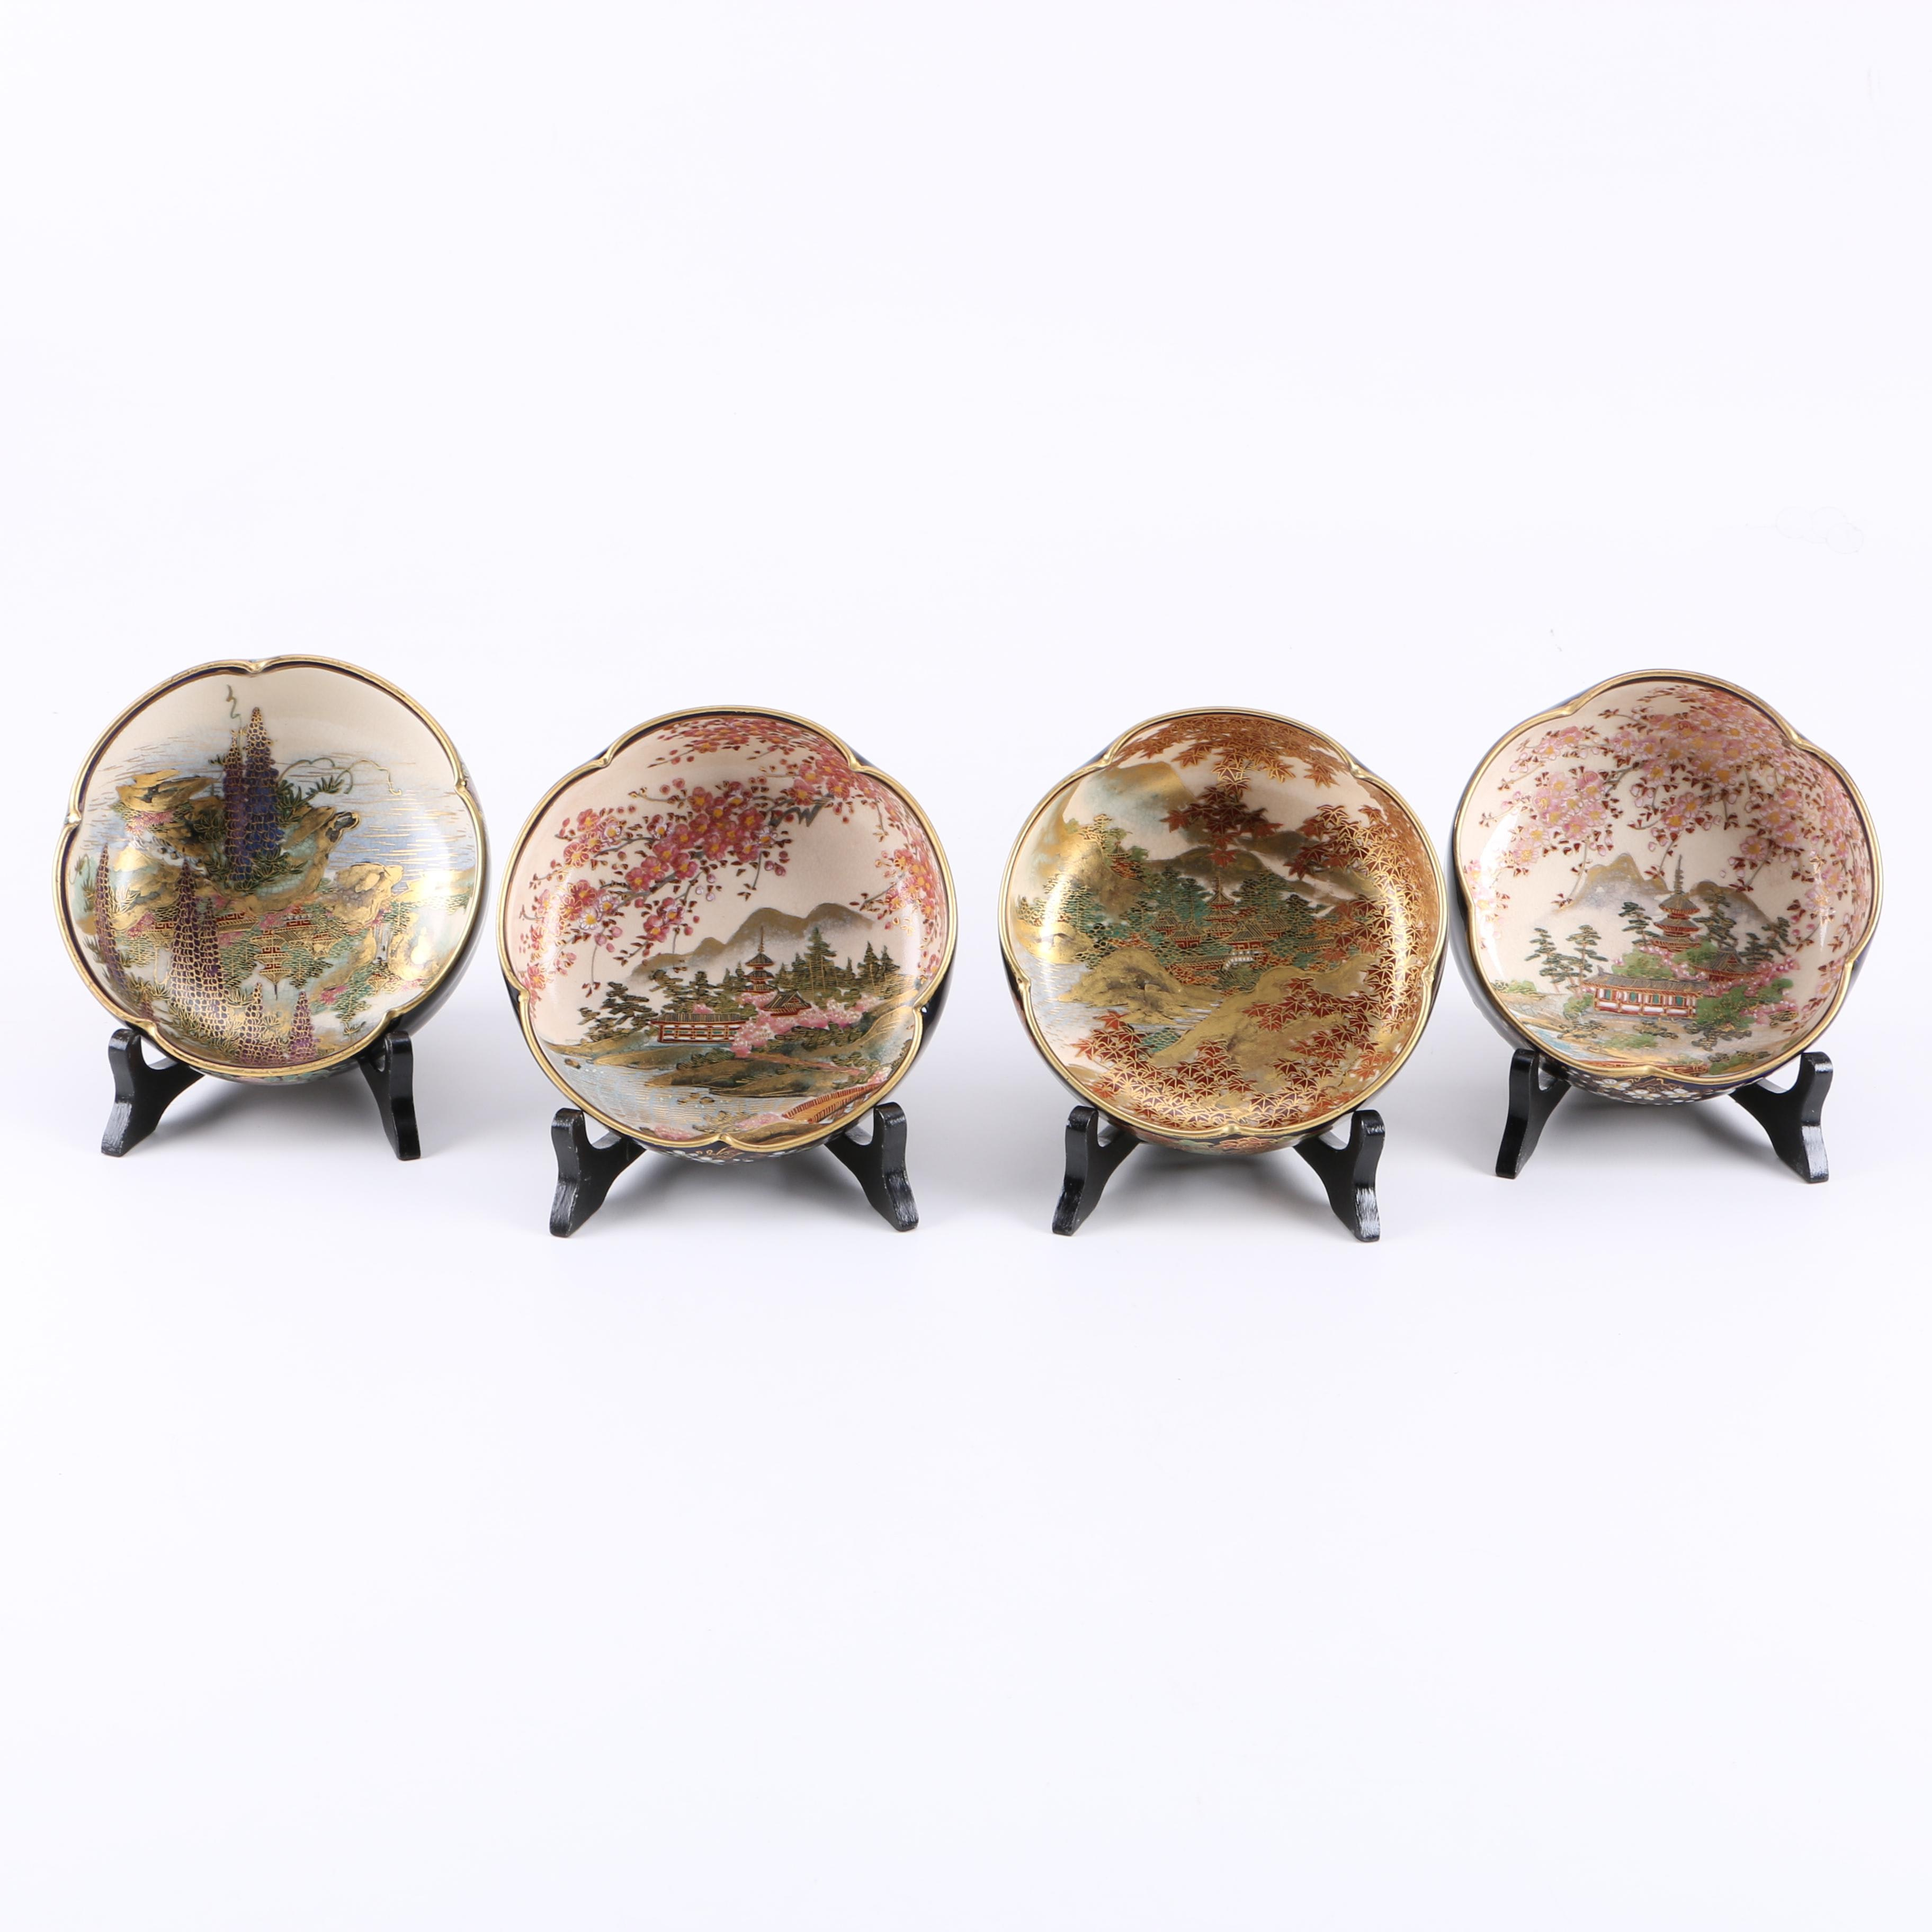 Set of Vintage Hand Painted Japanese Porcelain Bowls with Stands